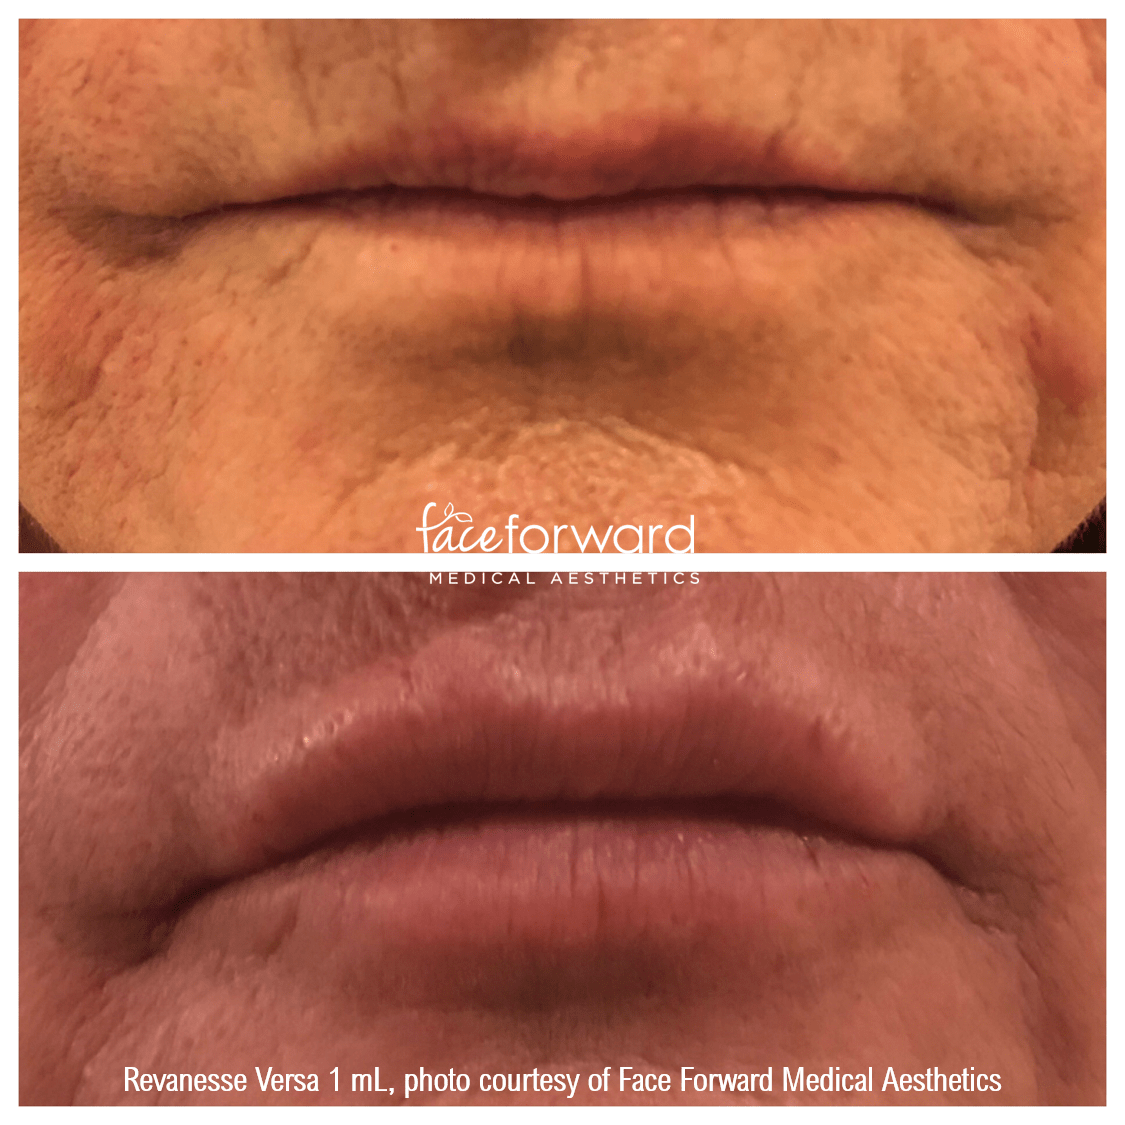 lip-filler-revanesse-versa-before-after.png